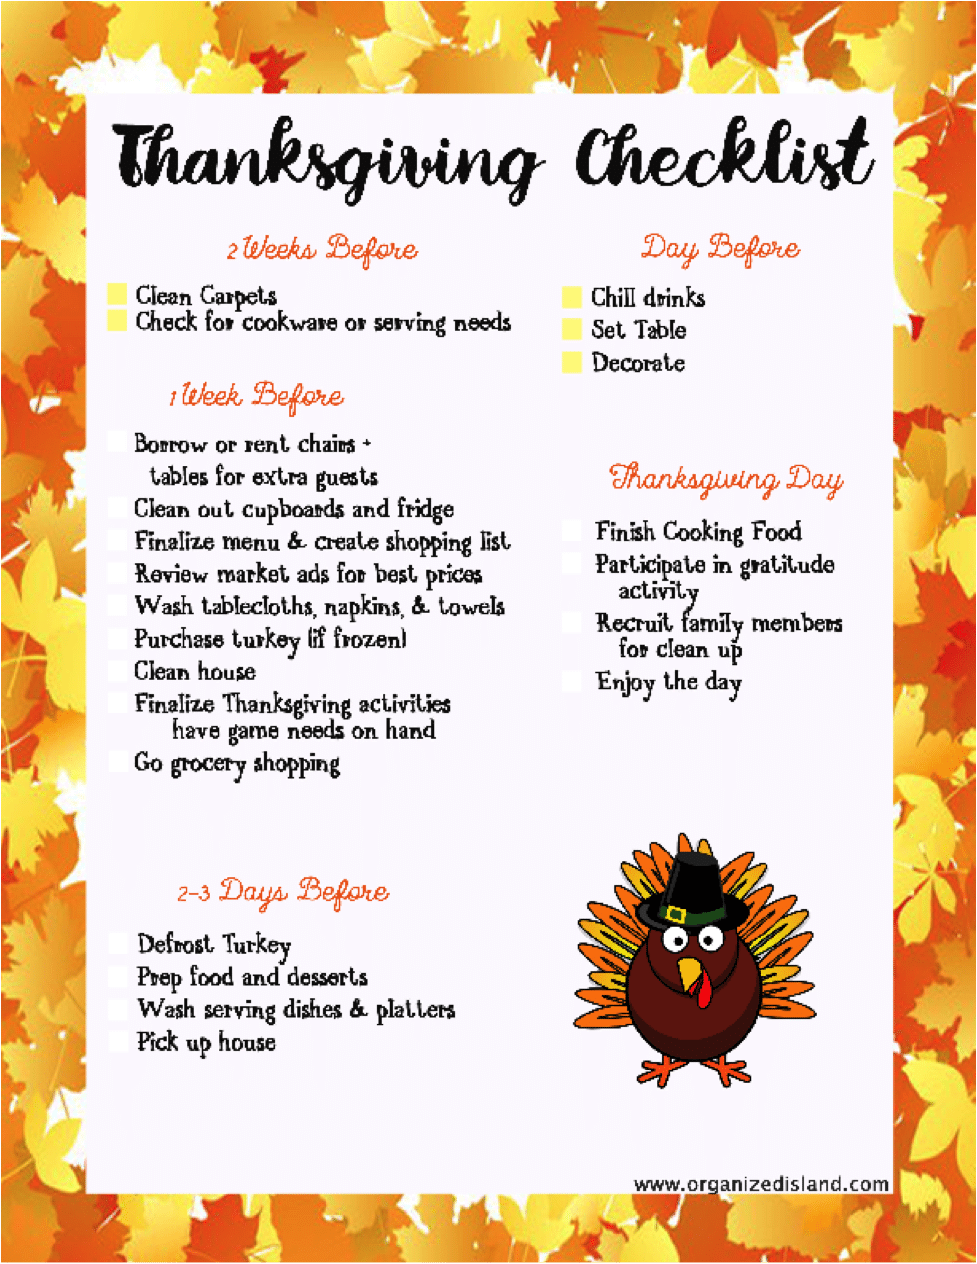 A Helpful Thanksgiving Checklist To Help You Prepare For The Holiday Happythanksgathering Ad